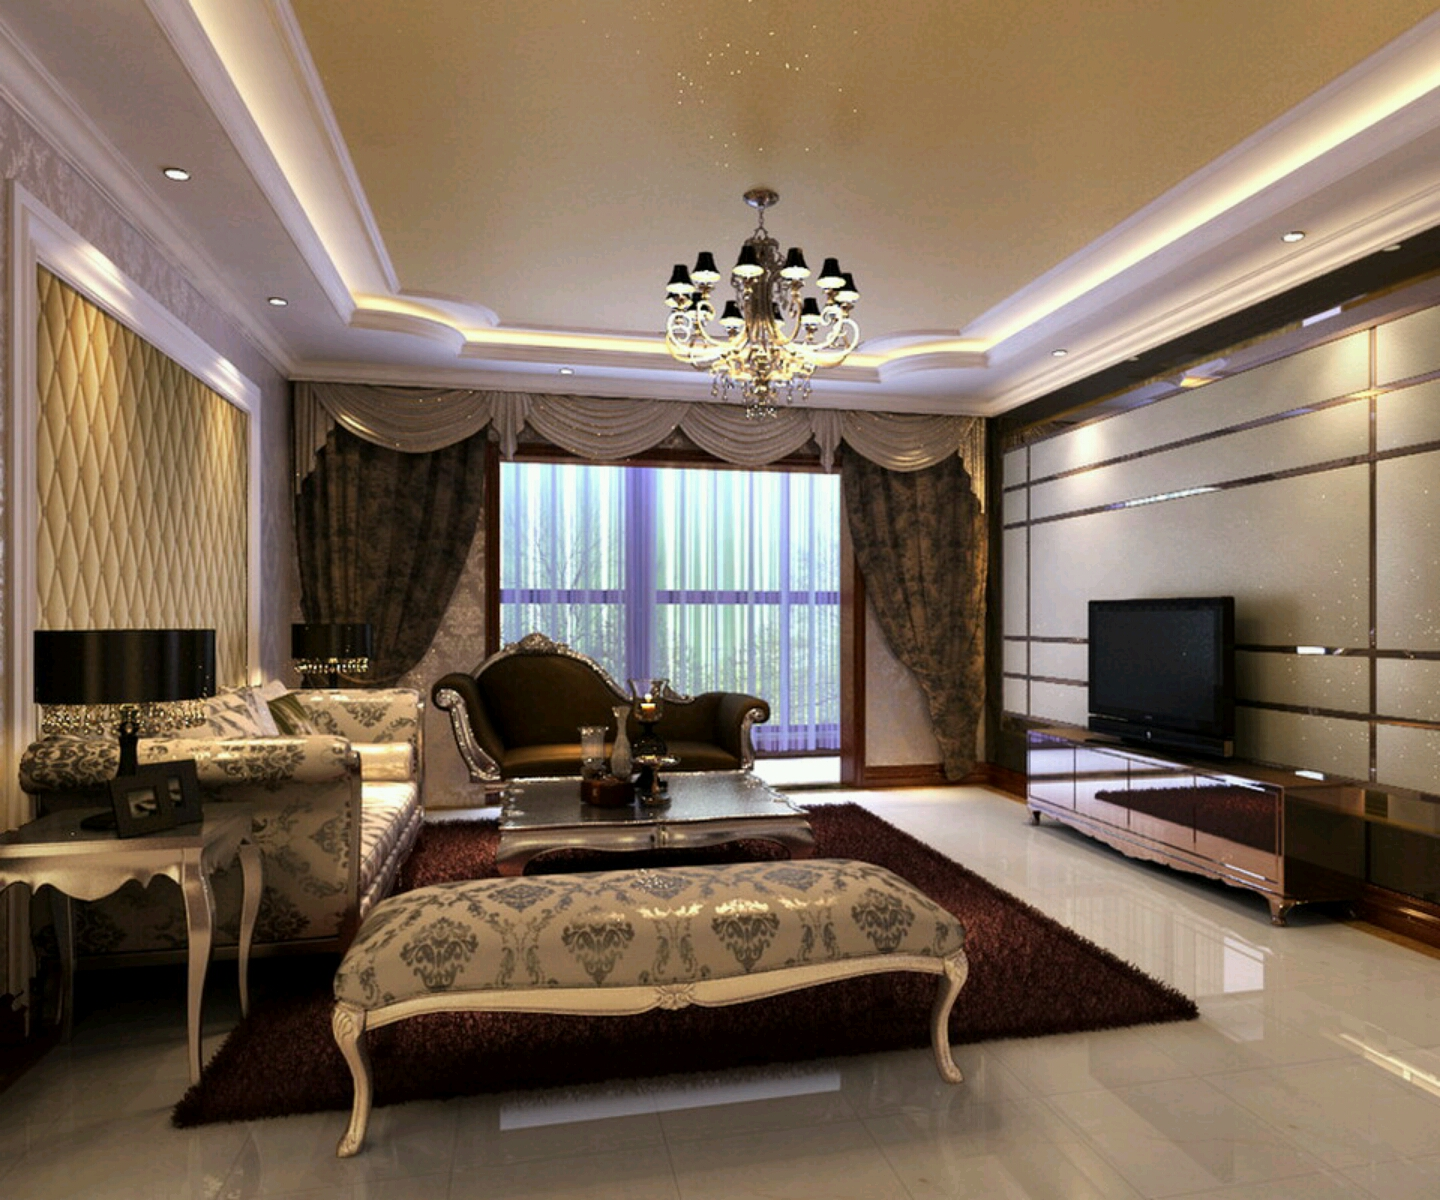 New home designs latest luxury homes interior decoration - Interior design styles living room ...